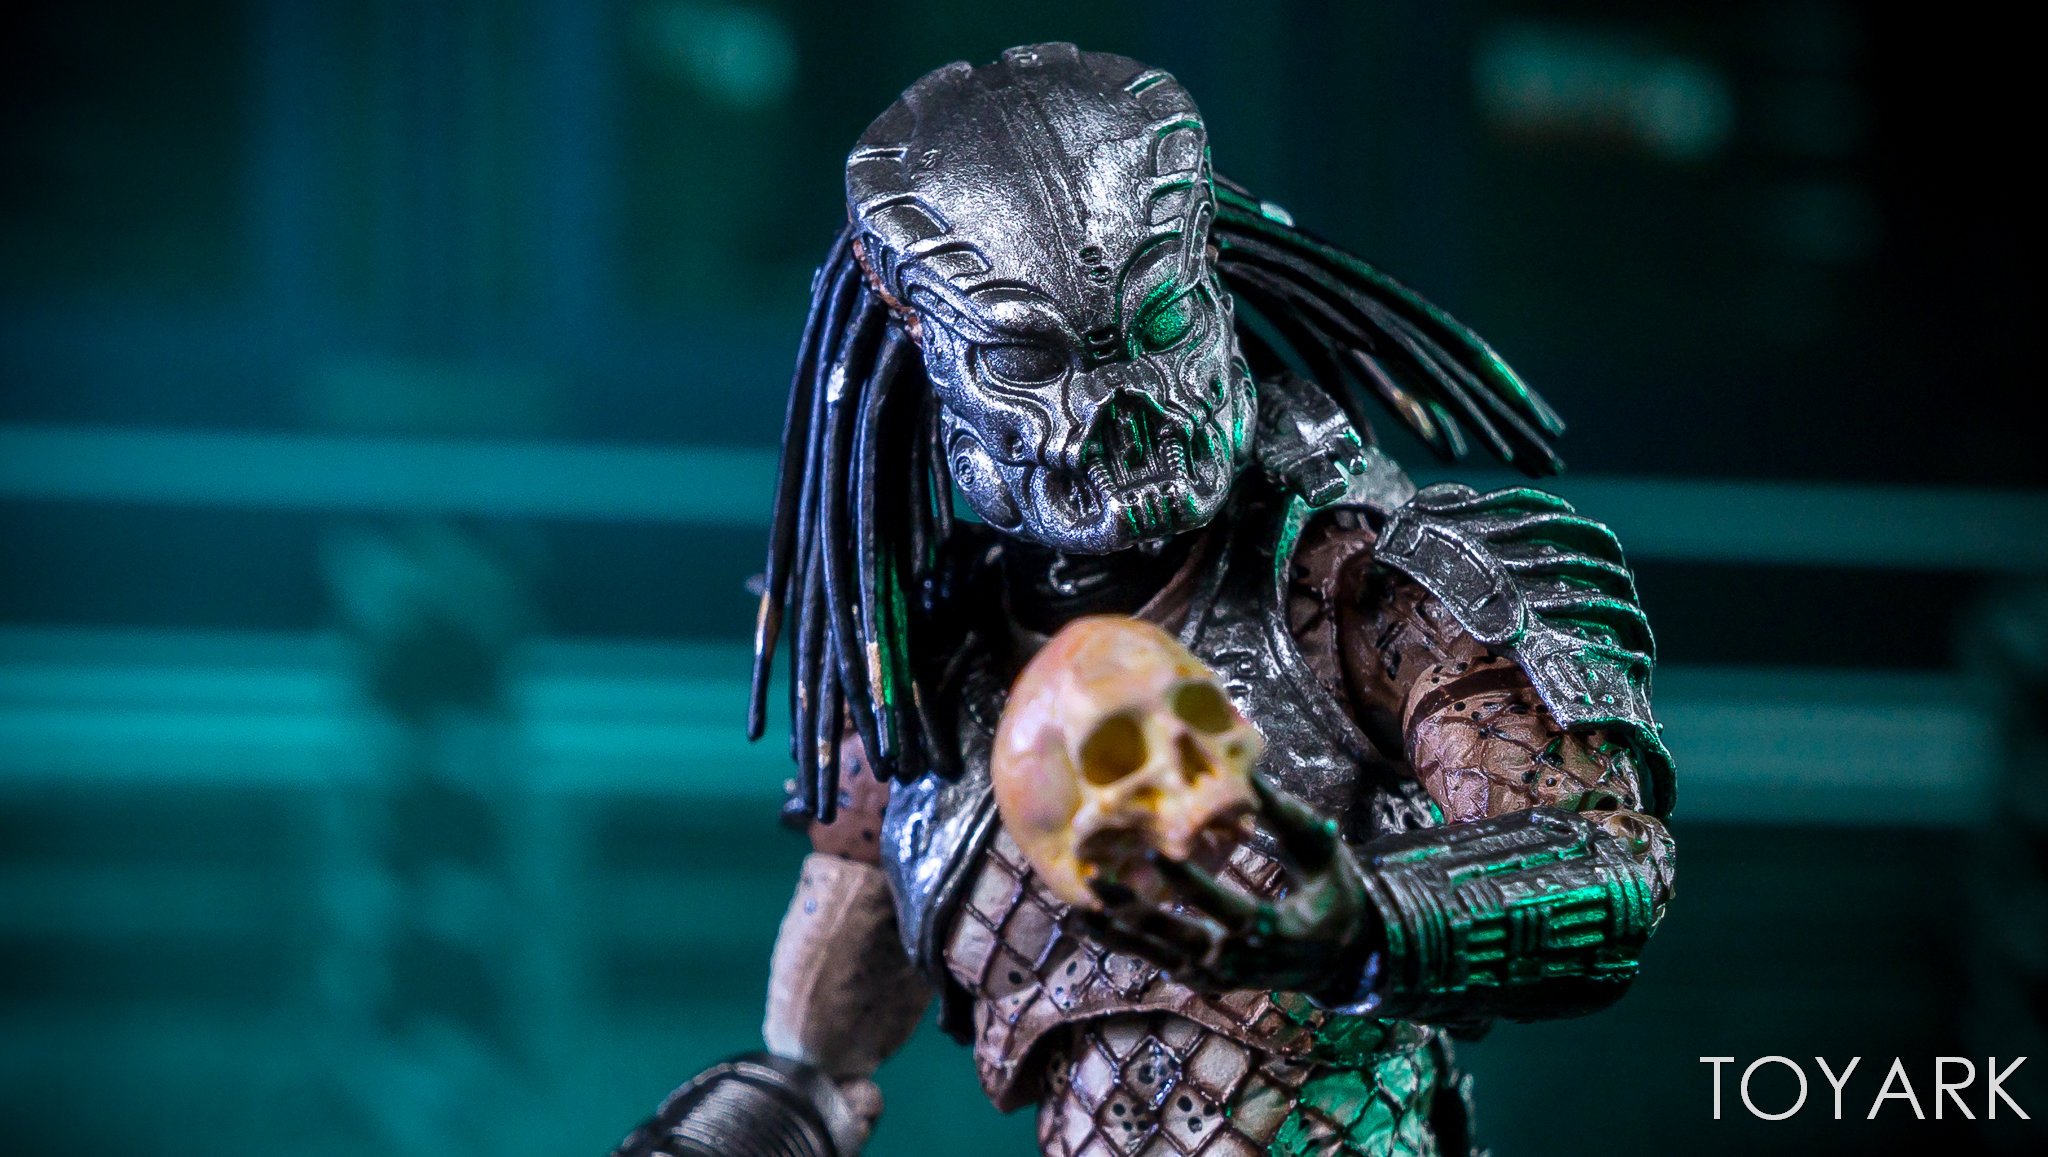 http://news.toyark.com/wp-content/uploads/sites/4/2018/03/Hiya-Predator-2-Figures-034.jpg